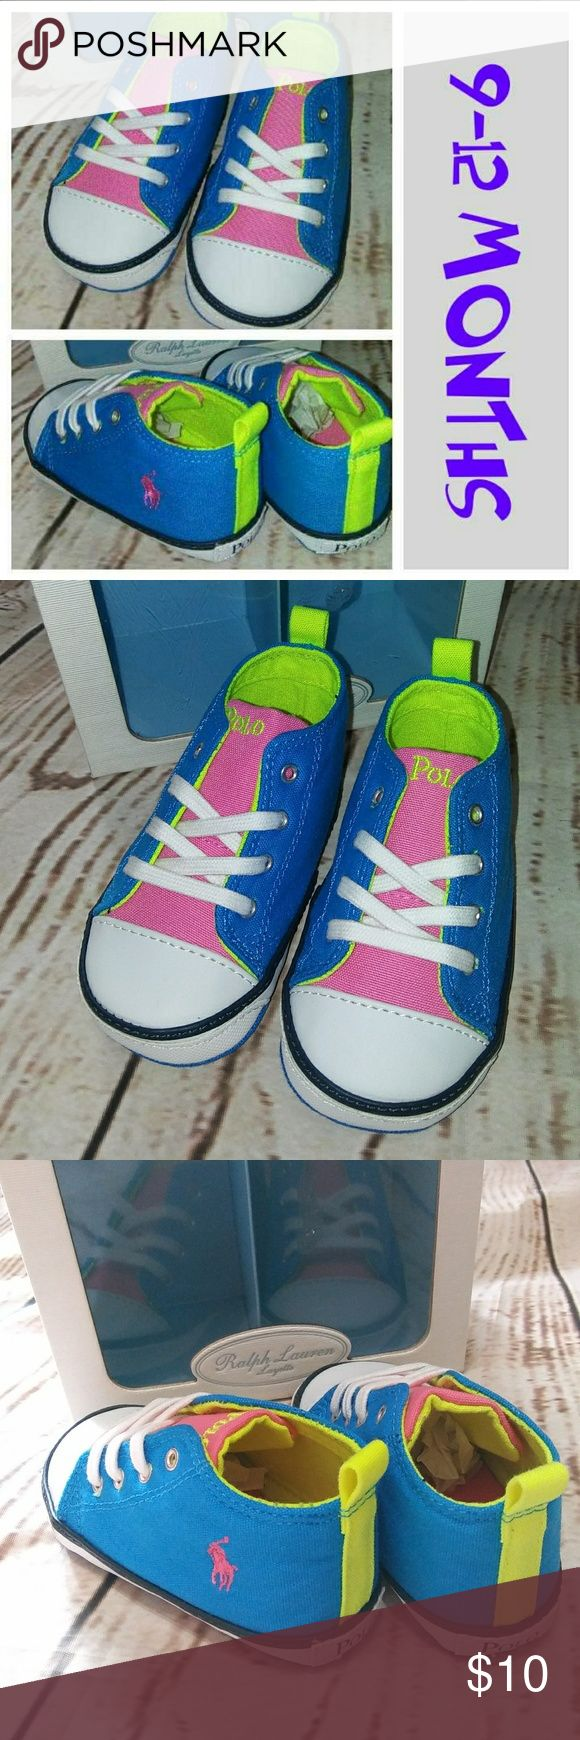 POLO baby shoes Neon shoes New in box Shoe size 4 Box says size 4 is 9-12 months Polo by Ralph Lauren Shoes Baby & Walker